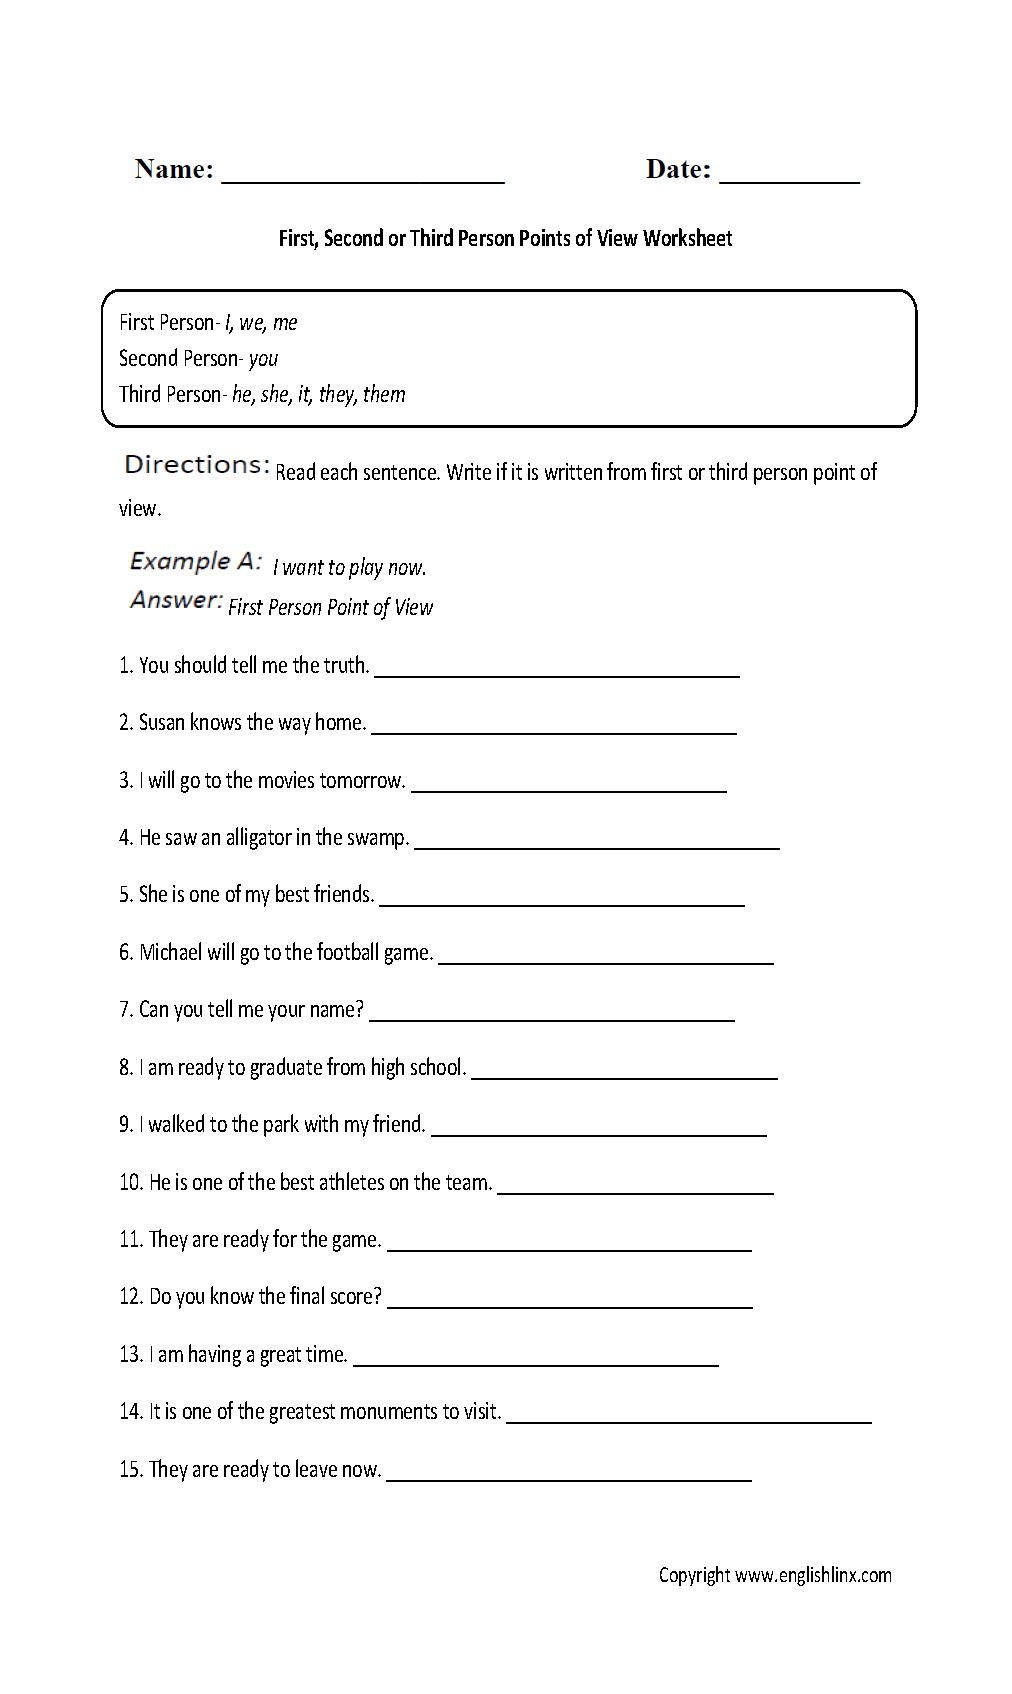 Weirdmailus  Unique Englishlinxcom  Point Of View Worksheets With Engaging Point Of View Worksheet With Archaic Kindergarten Math Counting Worksheets Also Printable Bible Worksheets In Addition Organic Chemistry Nomenclature Practice Worksheet And Rd Grade Line Plot Worksheets As Well As Social Studies Reading Comprehension Worksheets Additionally Worksheet Format From Englishlinxcom With Weirdmailus  Engaging Englishlinxcom  Point Of View Worksheets With Archaic Point Of View Worksheet And Unique Kindergarten Math Counting Worksheets Also Printable Bible Worksheets In Addition Organic Chemistry Nomenclature Practice Worksheet From Englishlinxcom